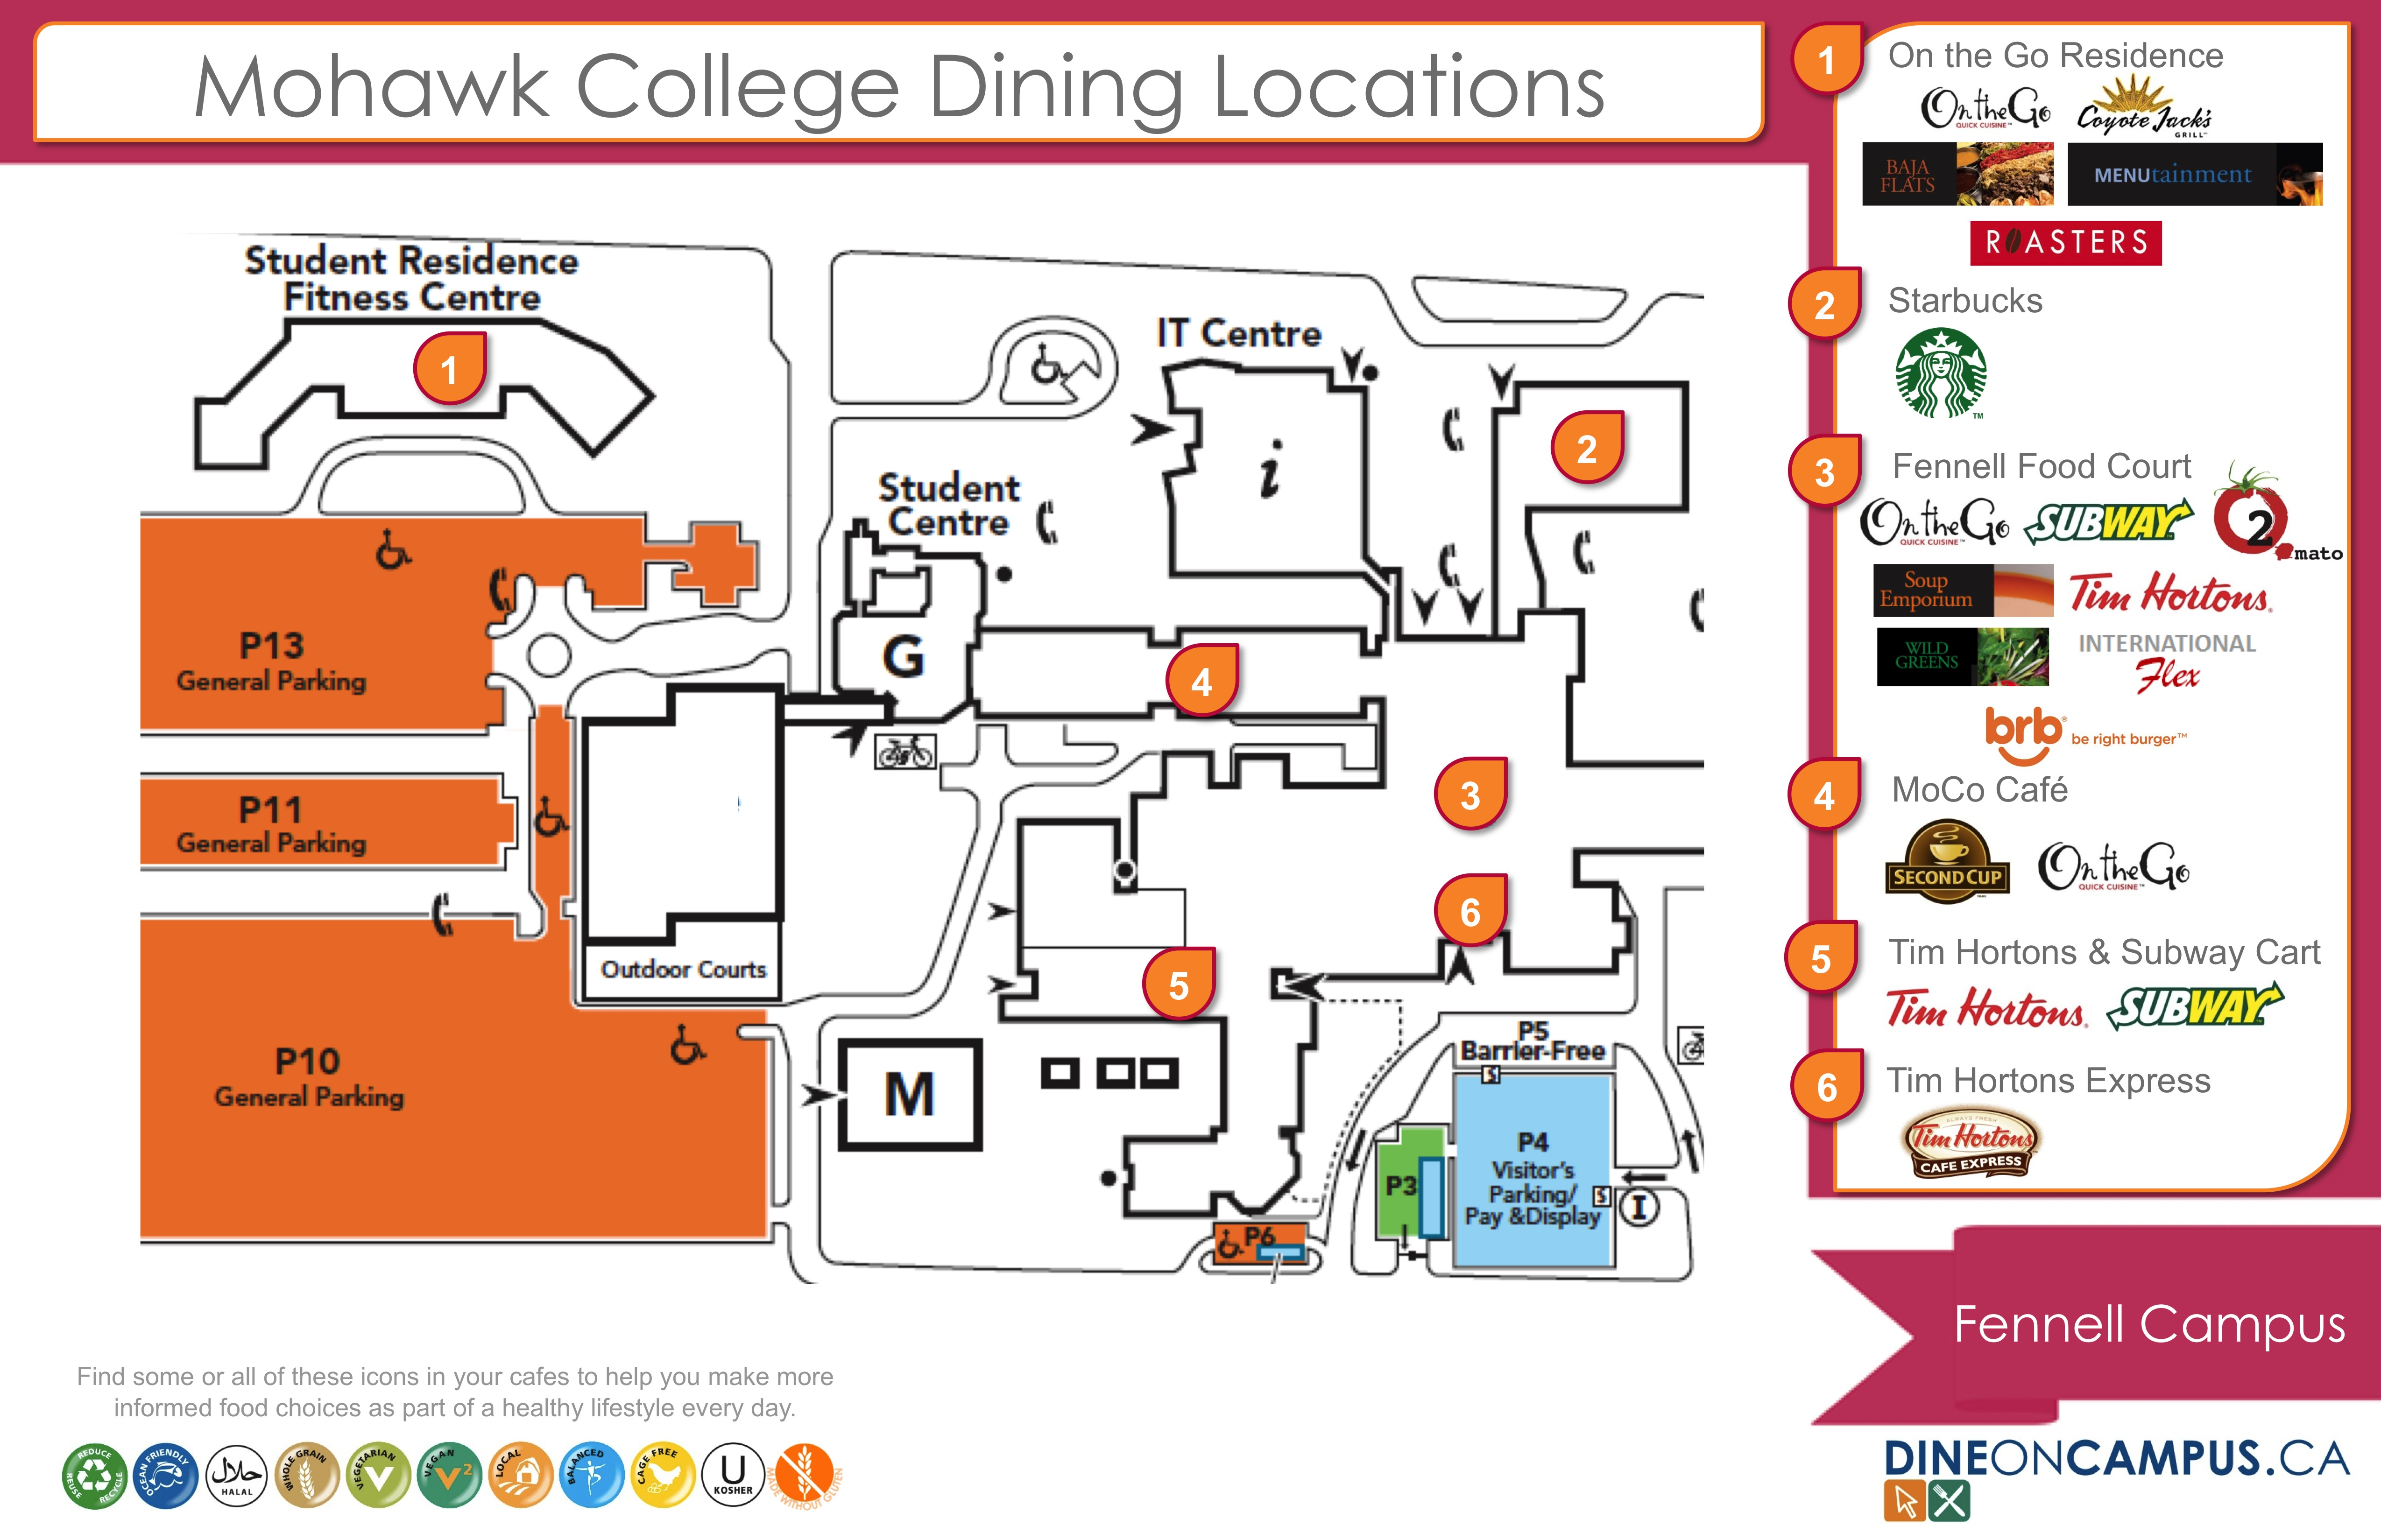 Fennell Campus Map